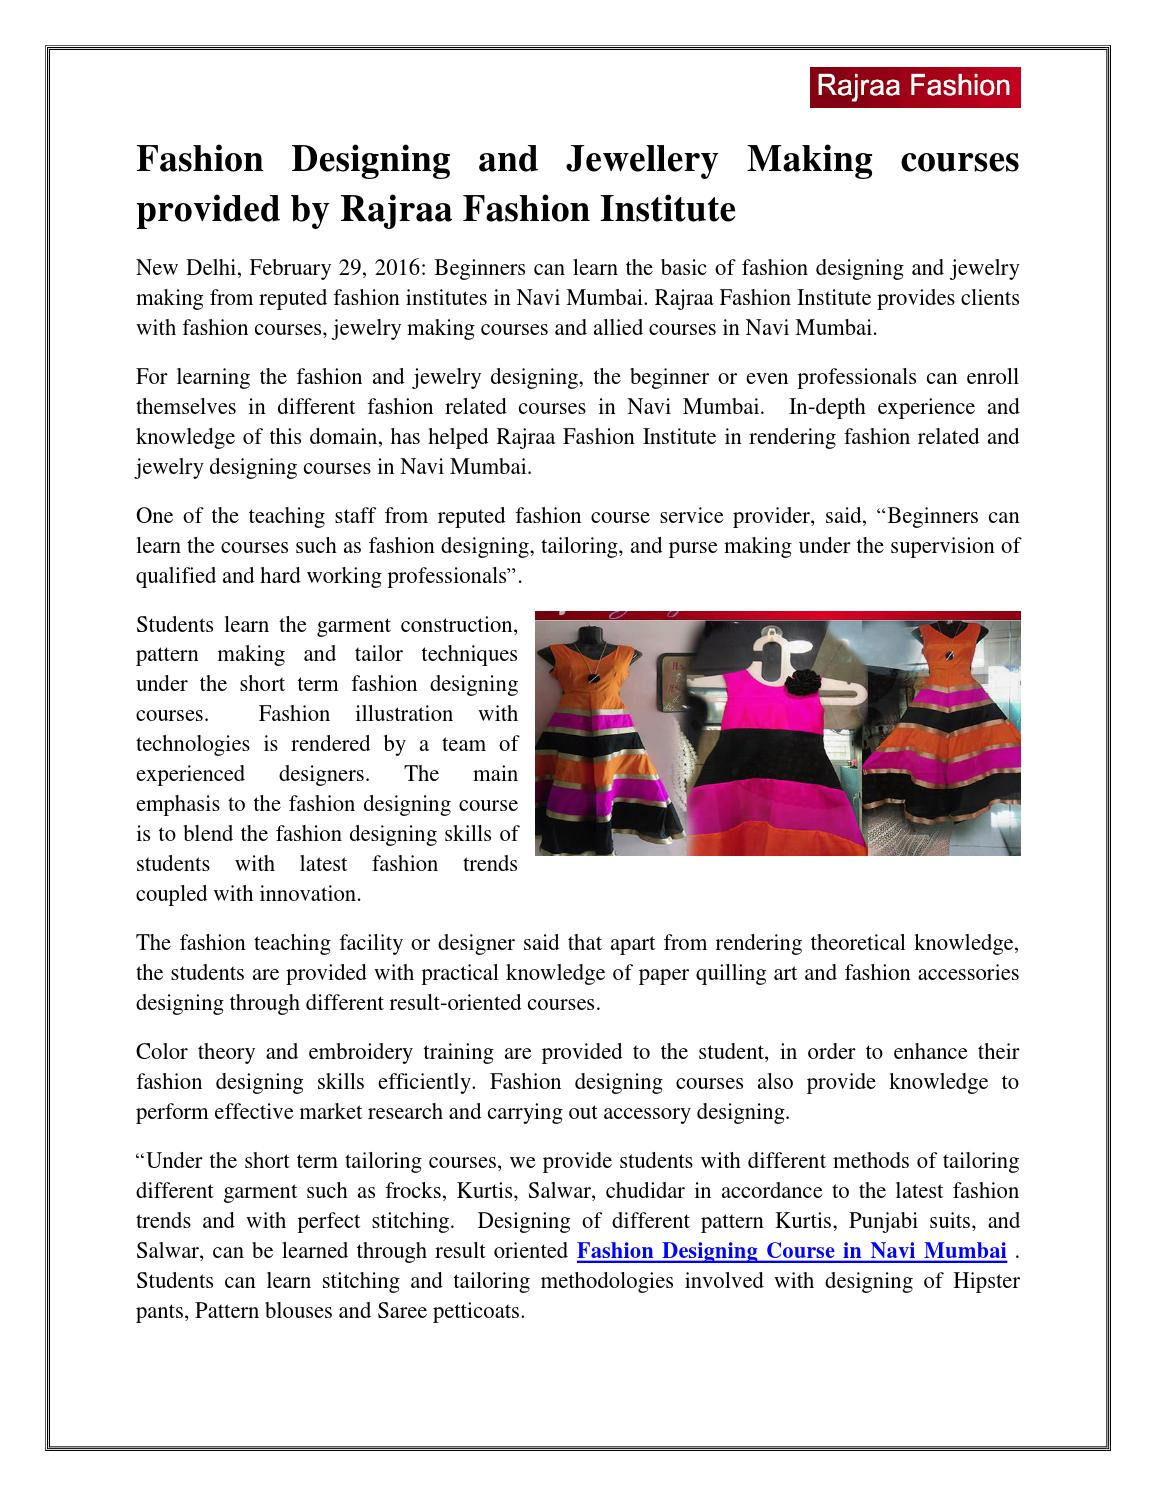 Fashion Designing And Jewellery Making Courses Provided By Rajraa Fashion Institute By Fashionr Issuu